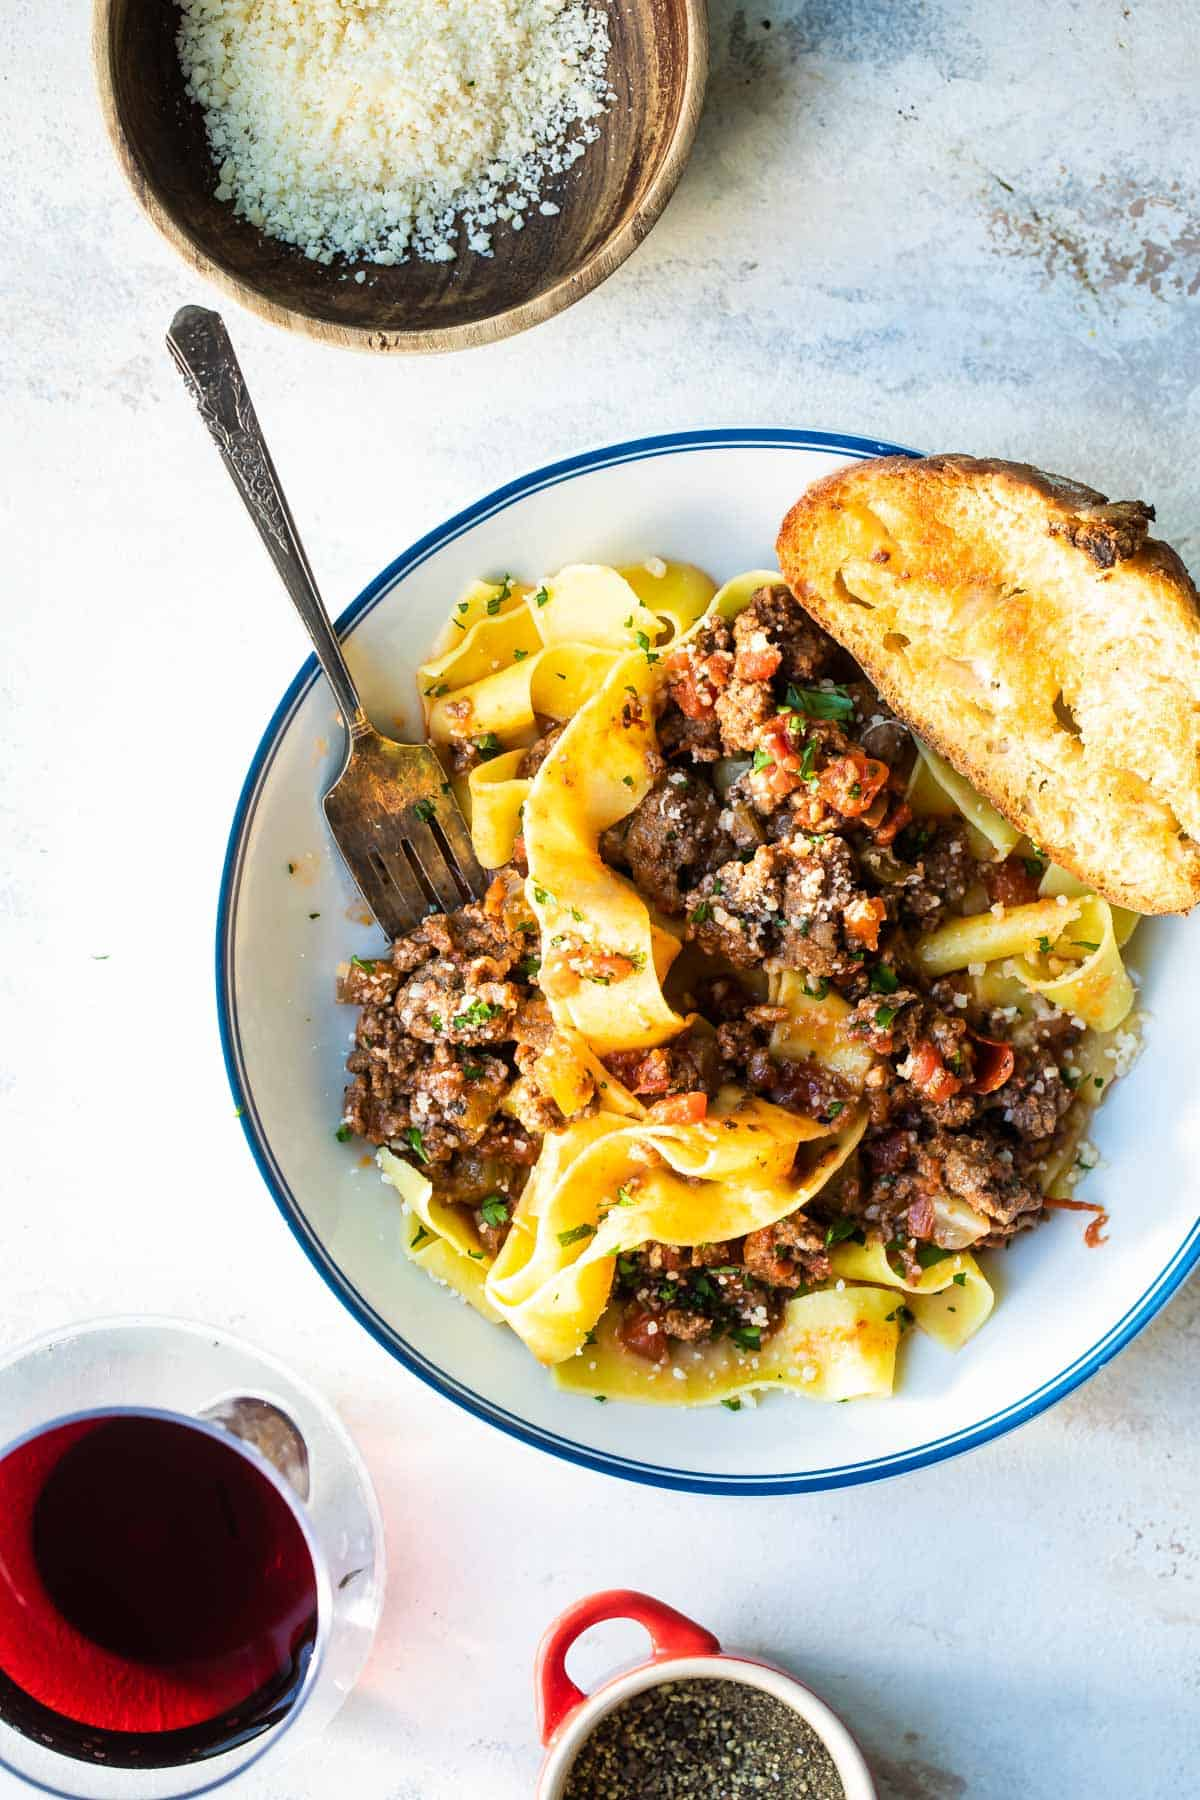 pappardelle pasta with beef ragu and crusty bread in a bowl